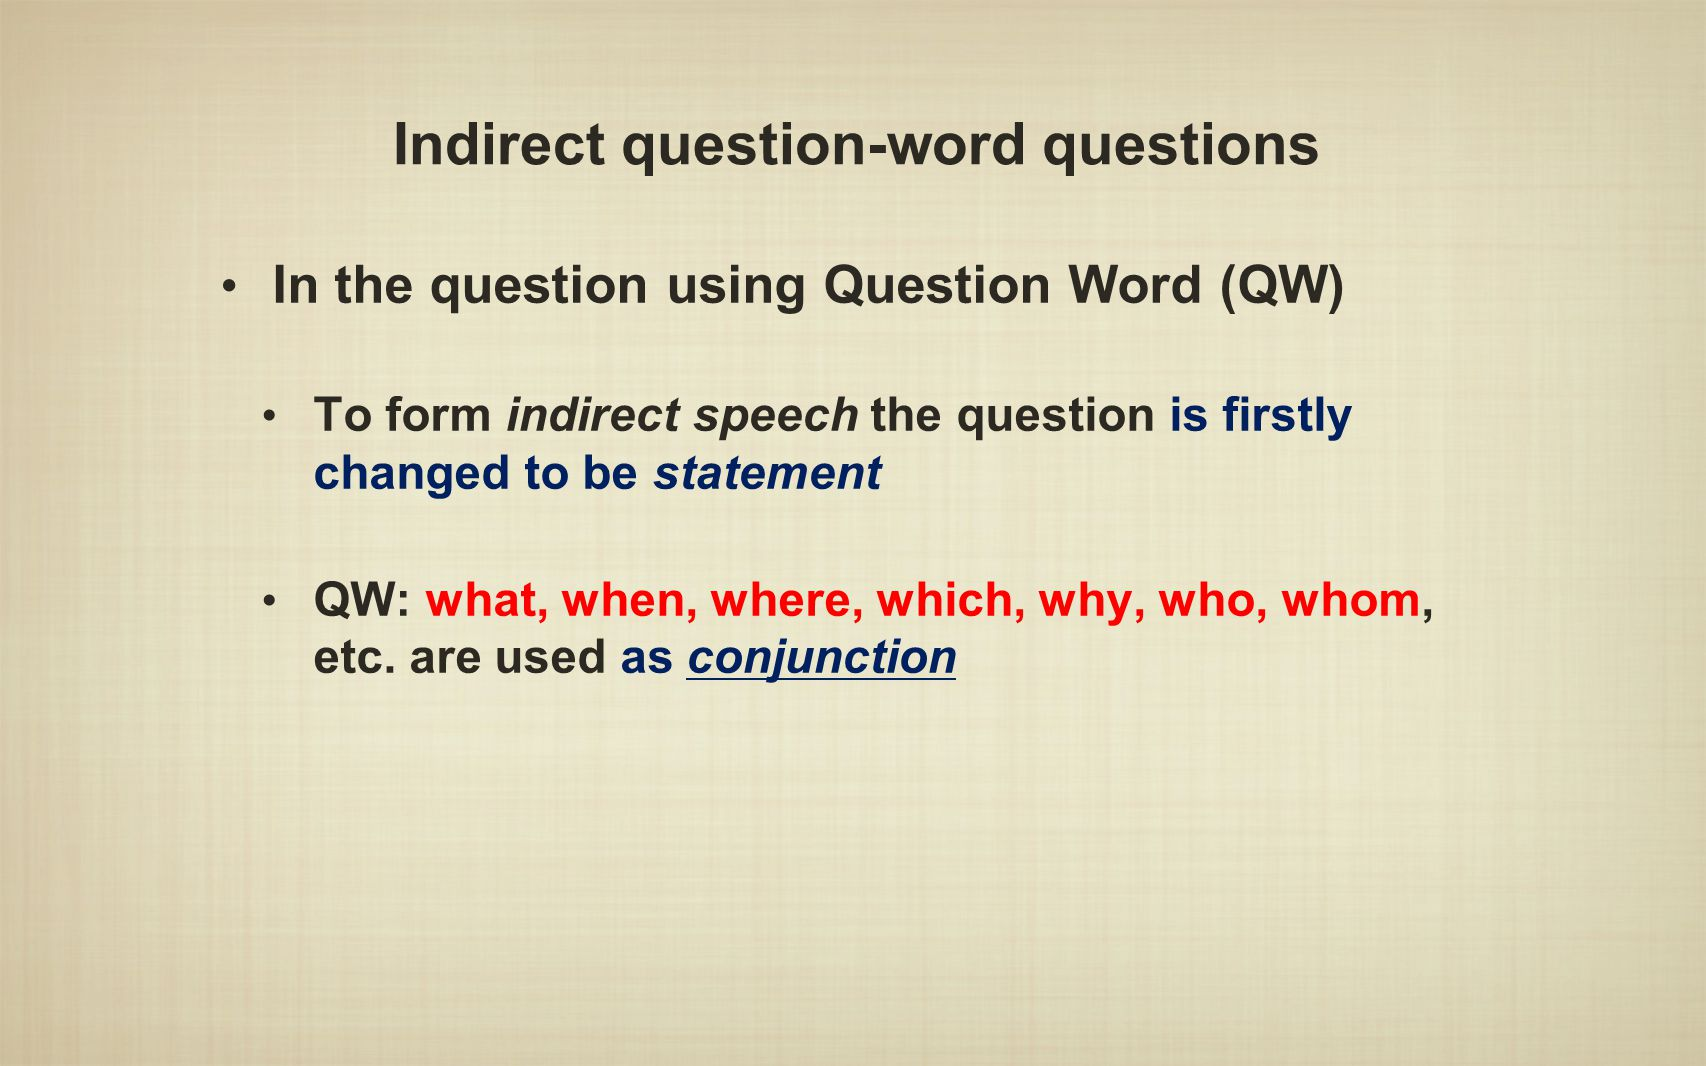 Indirect question-word questions